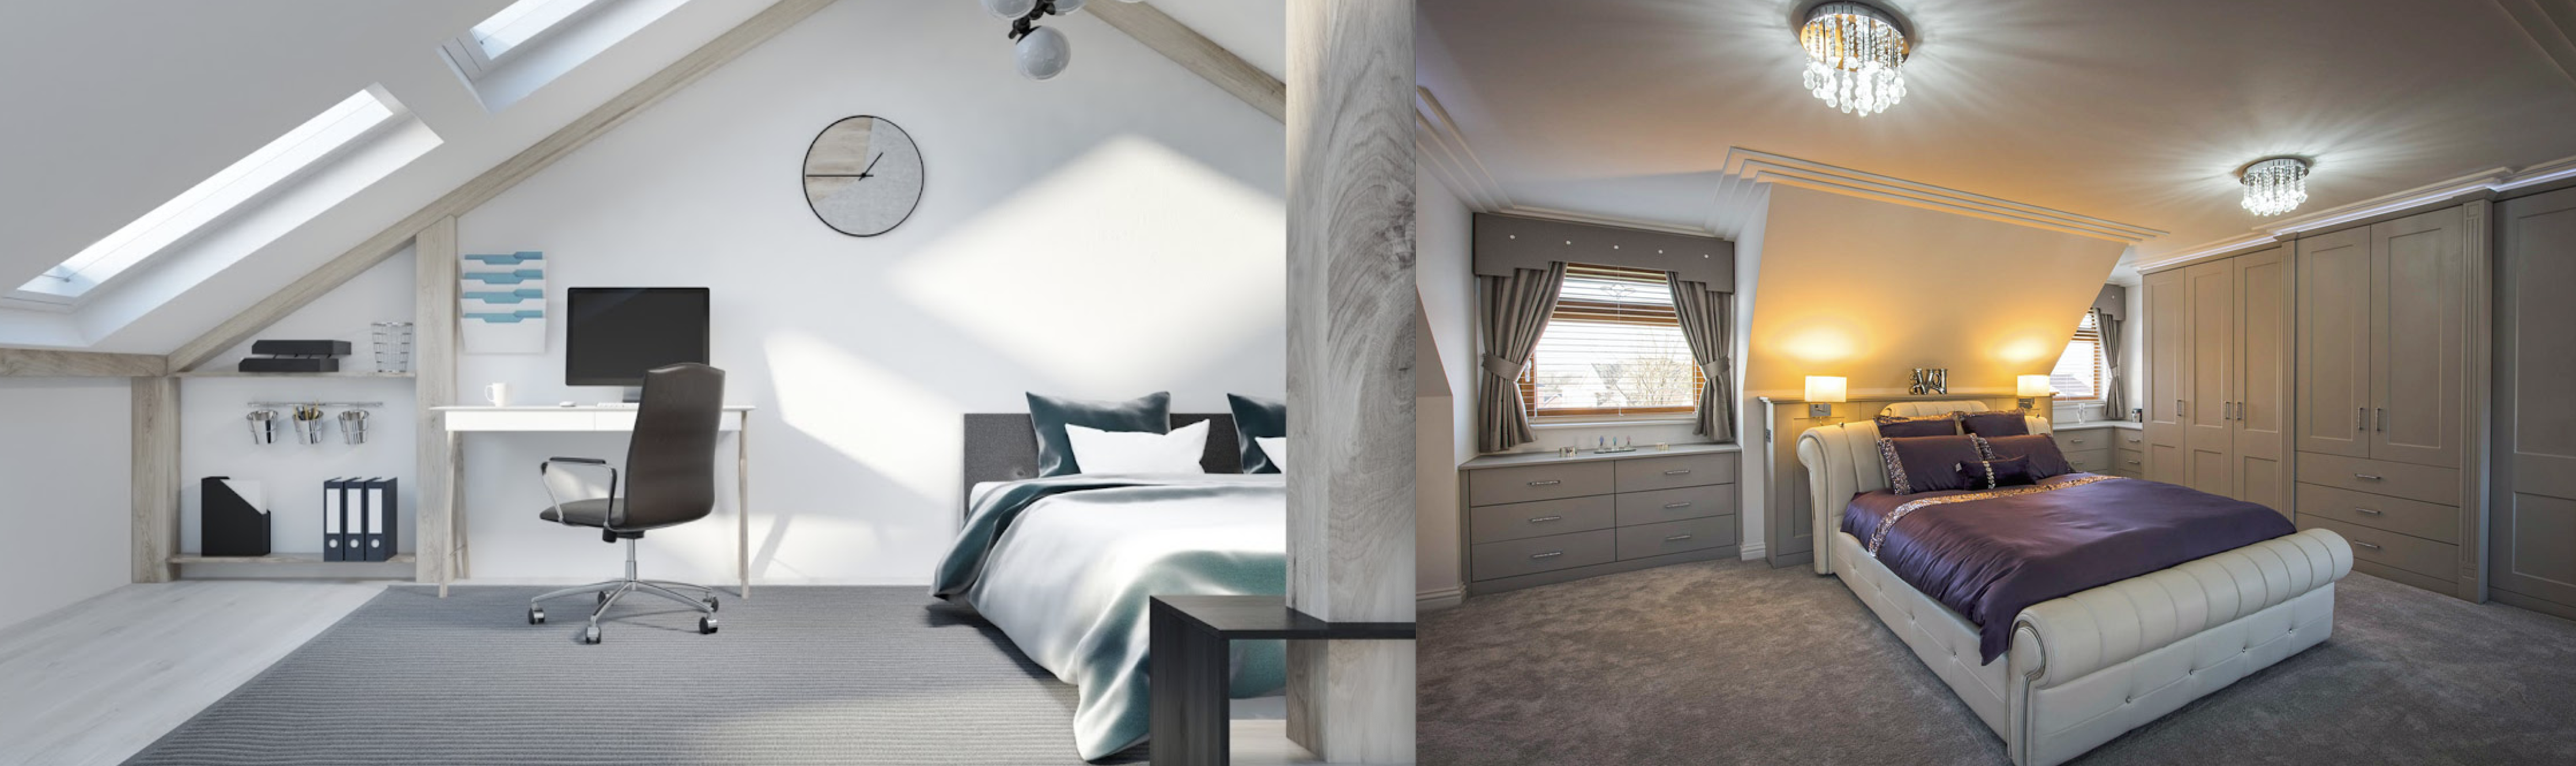 Beautiful dormer loft conversion in Macclesfield, creating a new master bedroom with private bathroom, walk in wardrobe and stunning new oak staircase.